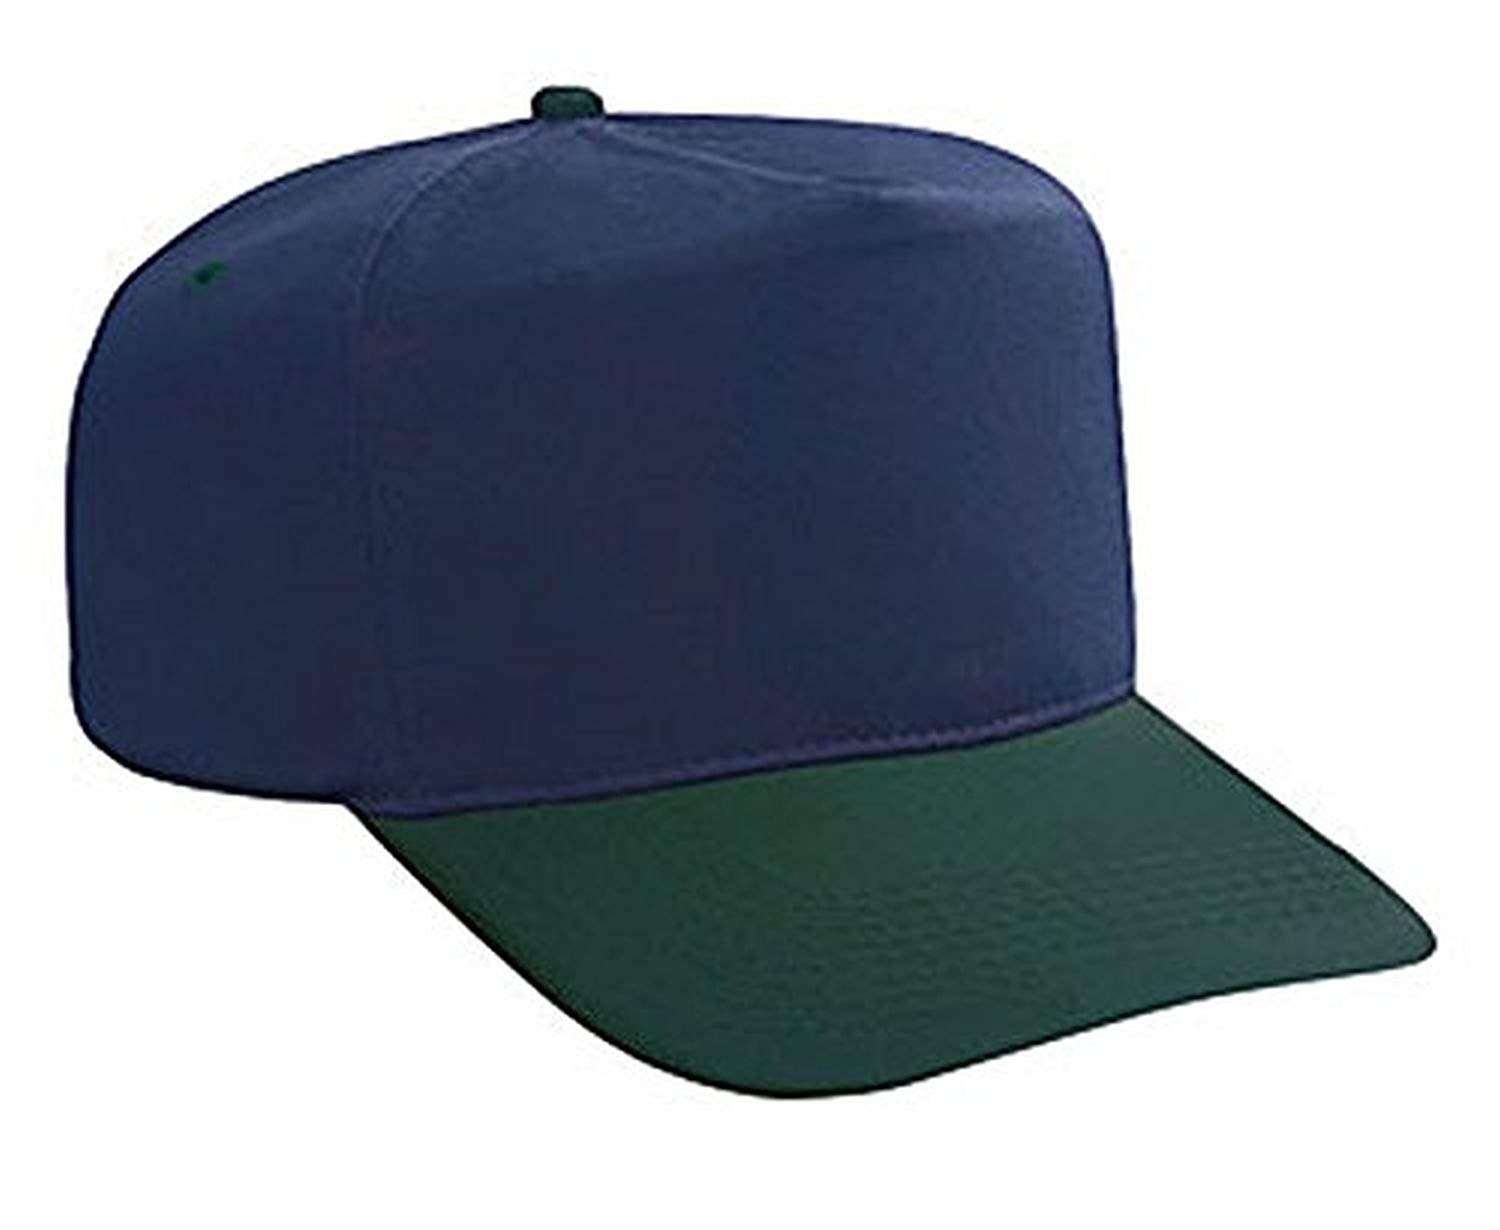 6c5737e0f4c Get Quotations · Hats   Caps Shop Cn Twill High Crown Golf Style Caps - By  TheTargetBuys